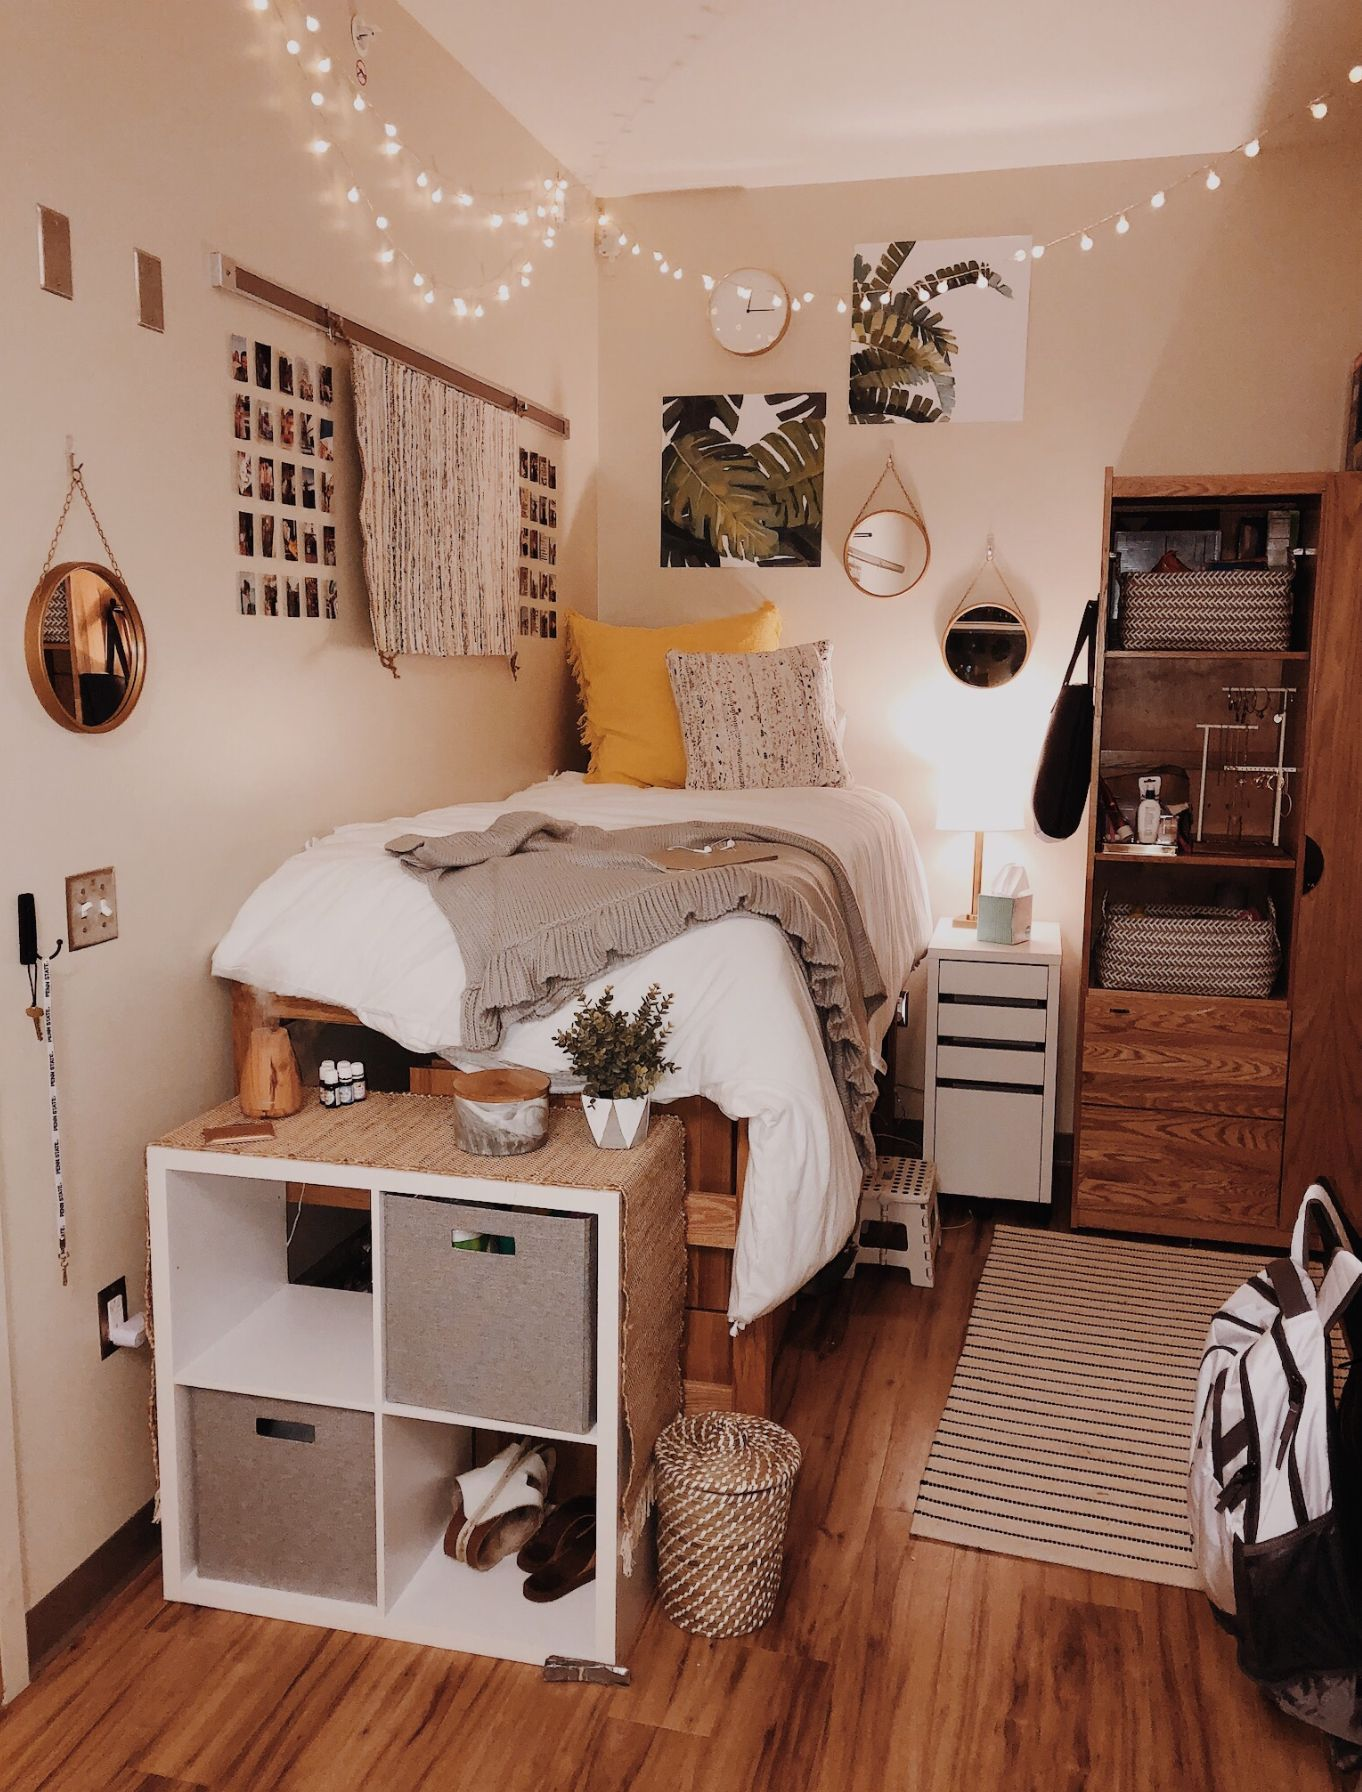 teen bedroom theme ideas that   so great also ways to decorate your dorm for spring this year interior rh pinterest